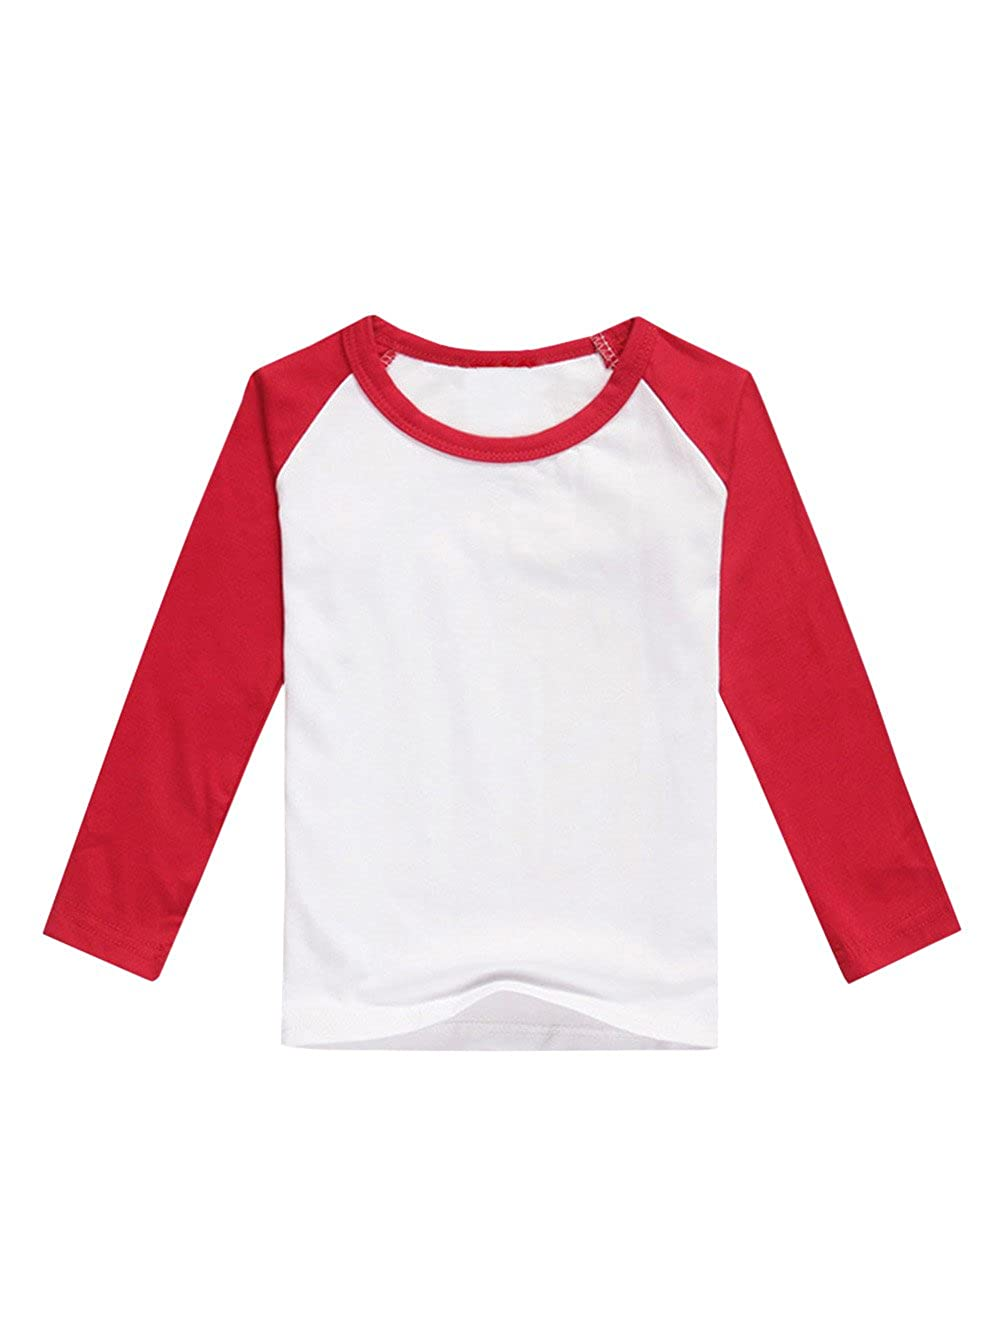 f405caa5a Classic Long Sleeve Raglan Baseball Tee suits for any sports and school  uniform. Nice gift for your baby in birthday,Christmas,Children\'s ...